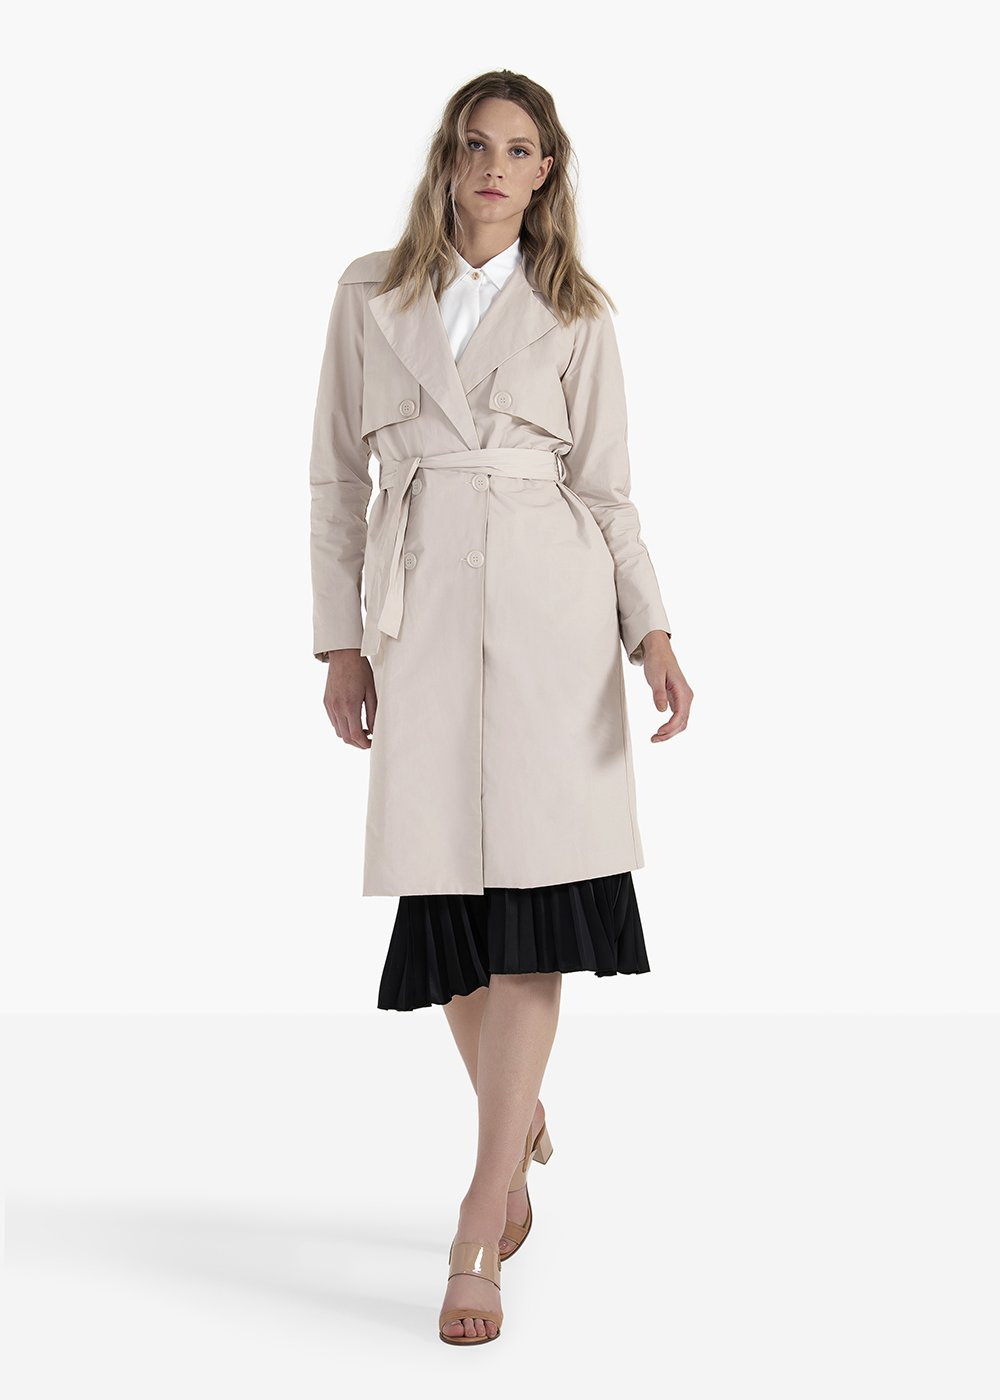 Ted double-breasted trench coat with belt and tortoise-shell buttons - Light Beige - Woman